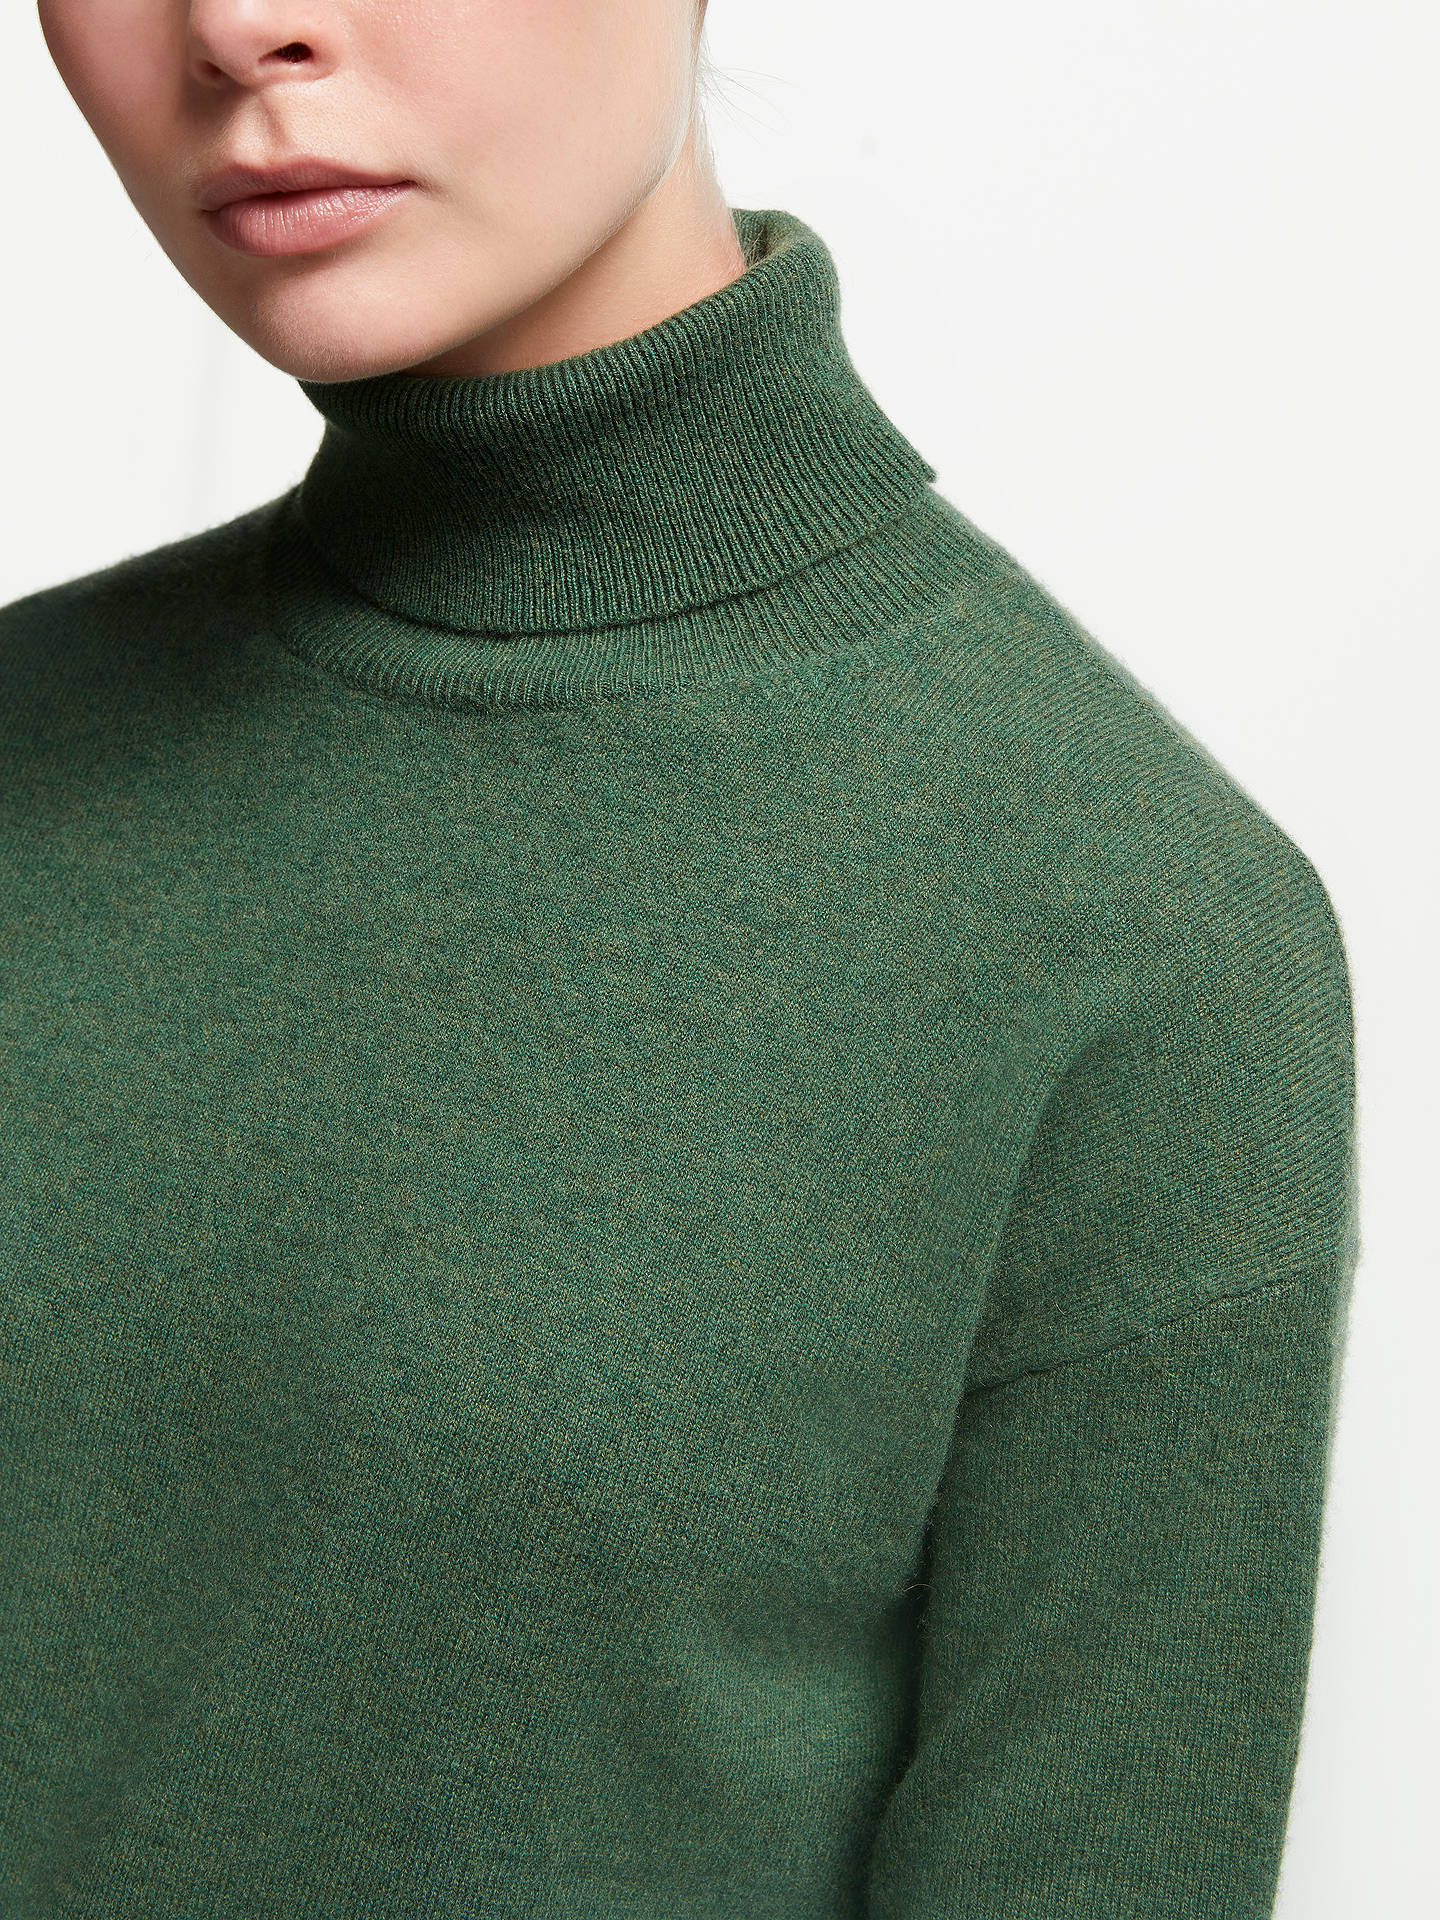 BuyJohn Lewis & Partners Cashmere Relaxed Roll Neck Sweater, Grass Green, 8 Online at johnlewis.com